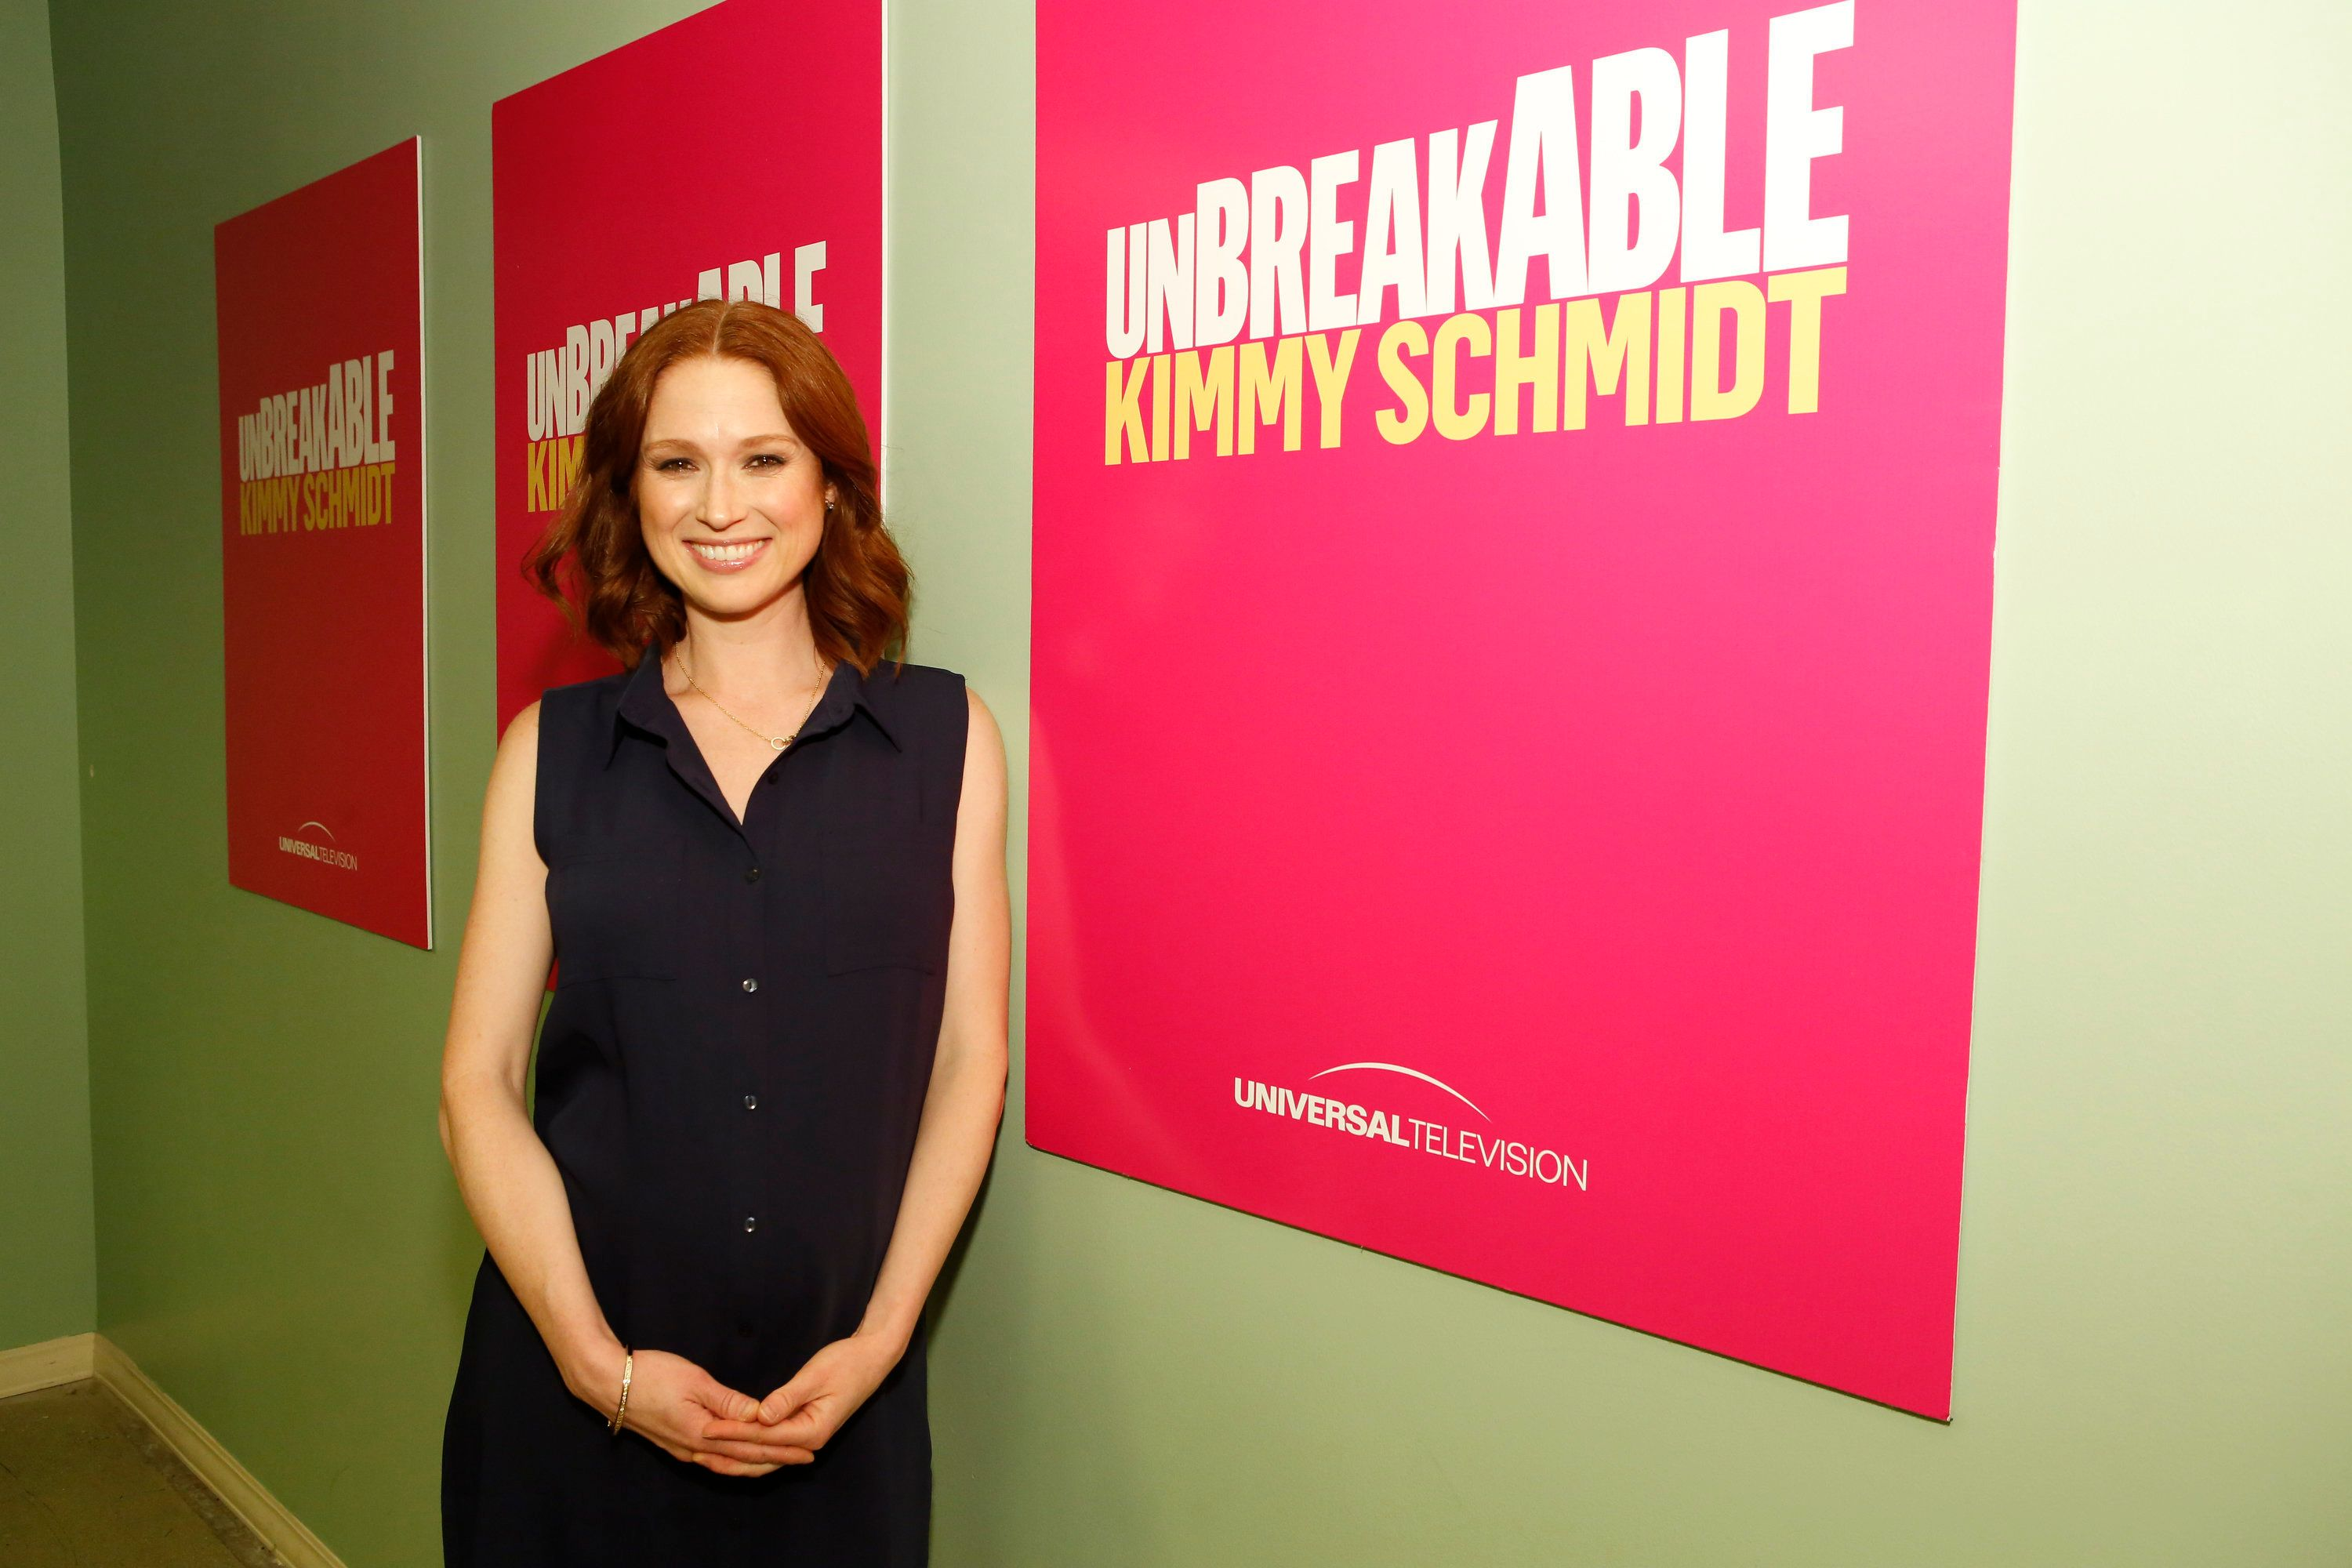 UNBREAKABLE KIMMY SCHMIDT -- FYC @ UCB Event at Upright Citizens Brigade Theatre Sunset, Los Angeles, June 6, 2016 -- Pictured: Ellie Kemper -- (Photo by: Trae Patton/Universal Television/NBCU Photo Bank via Getty Images)